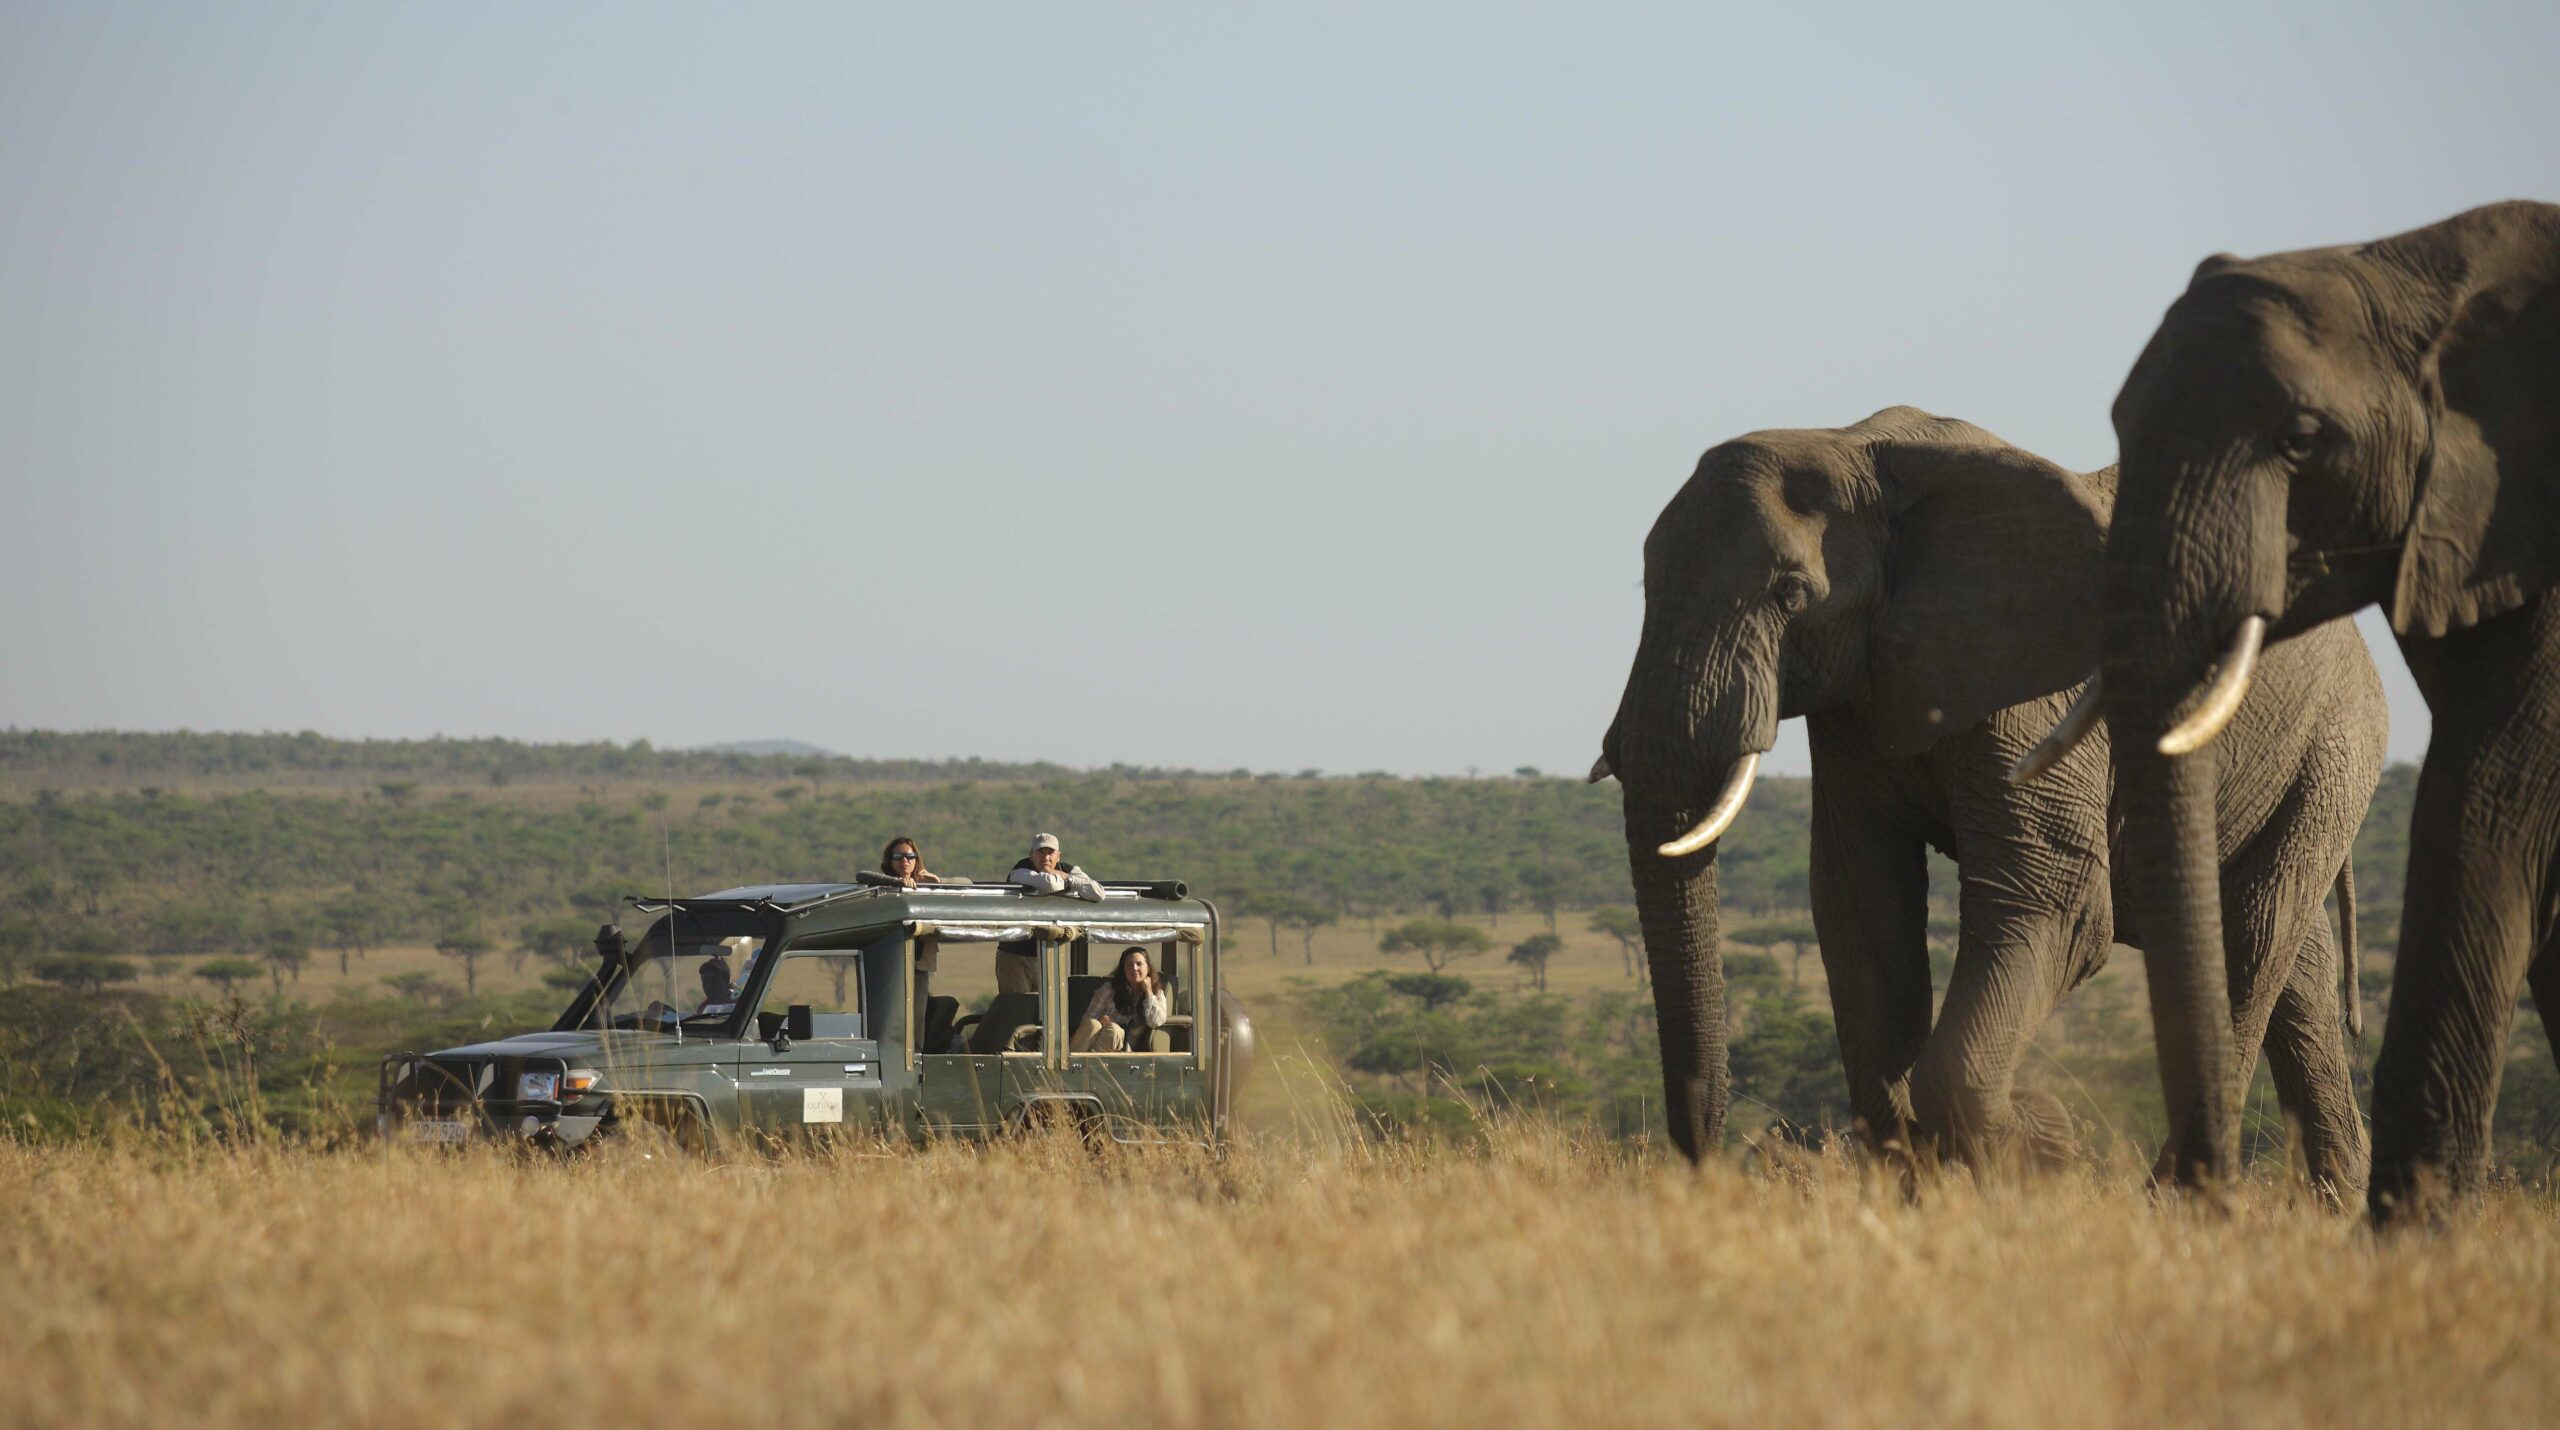 adventure Kenya safari offers game drive car with guests observing a male elephant